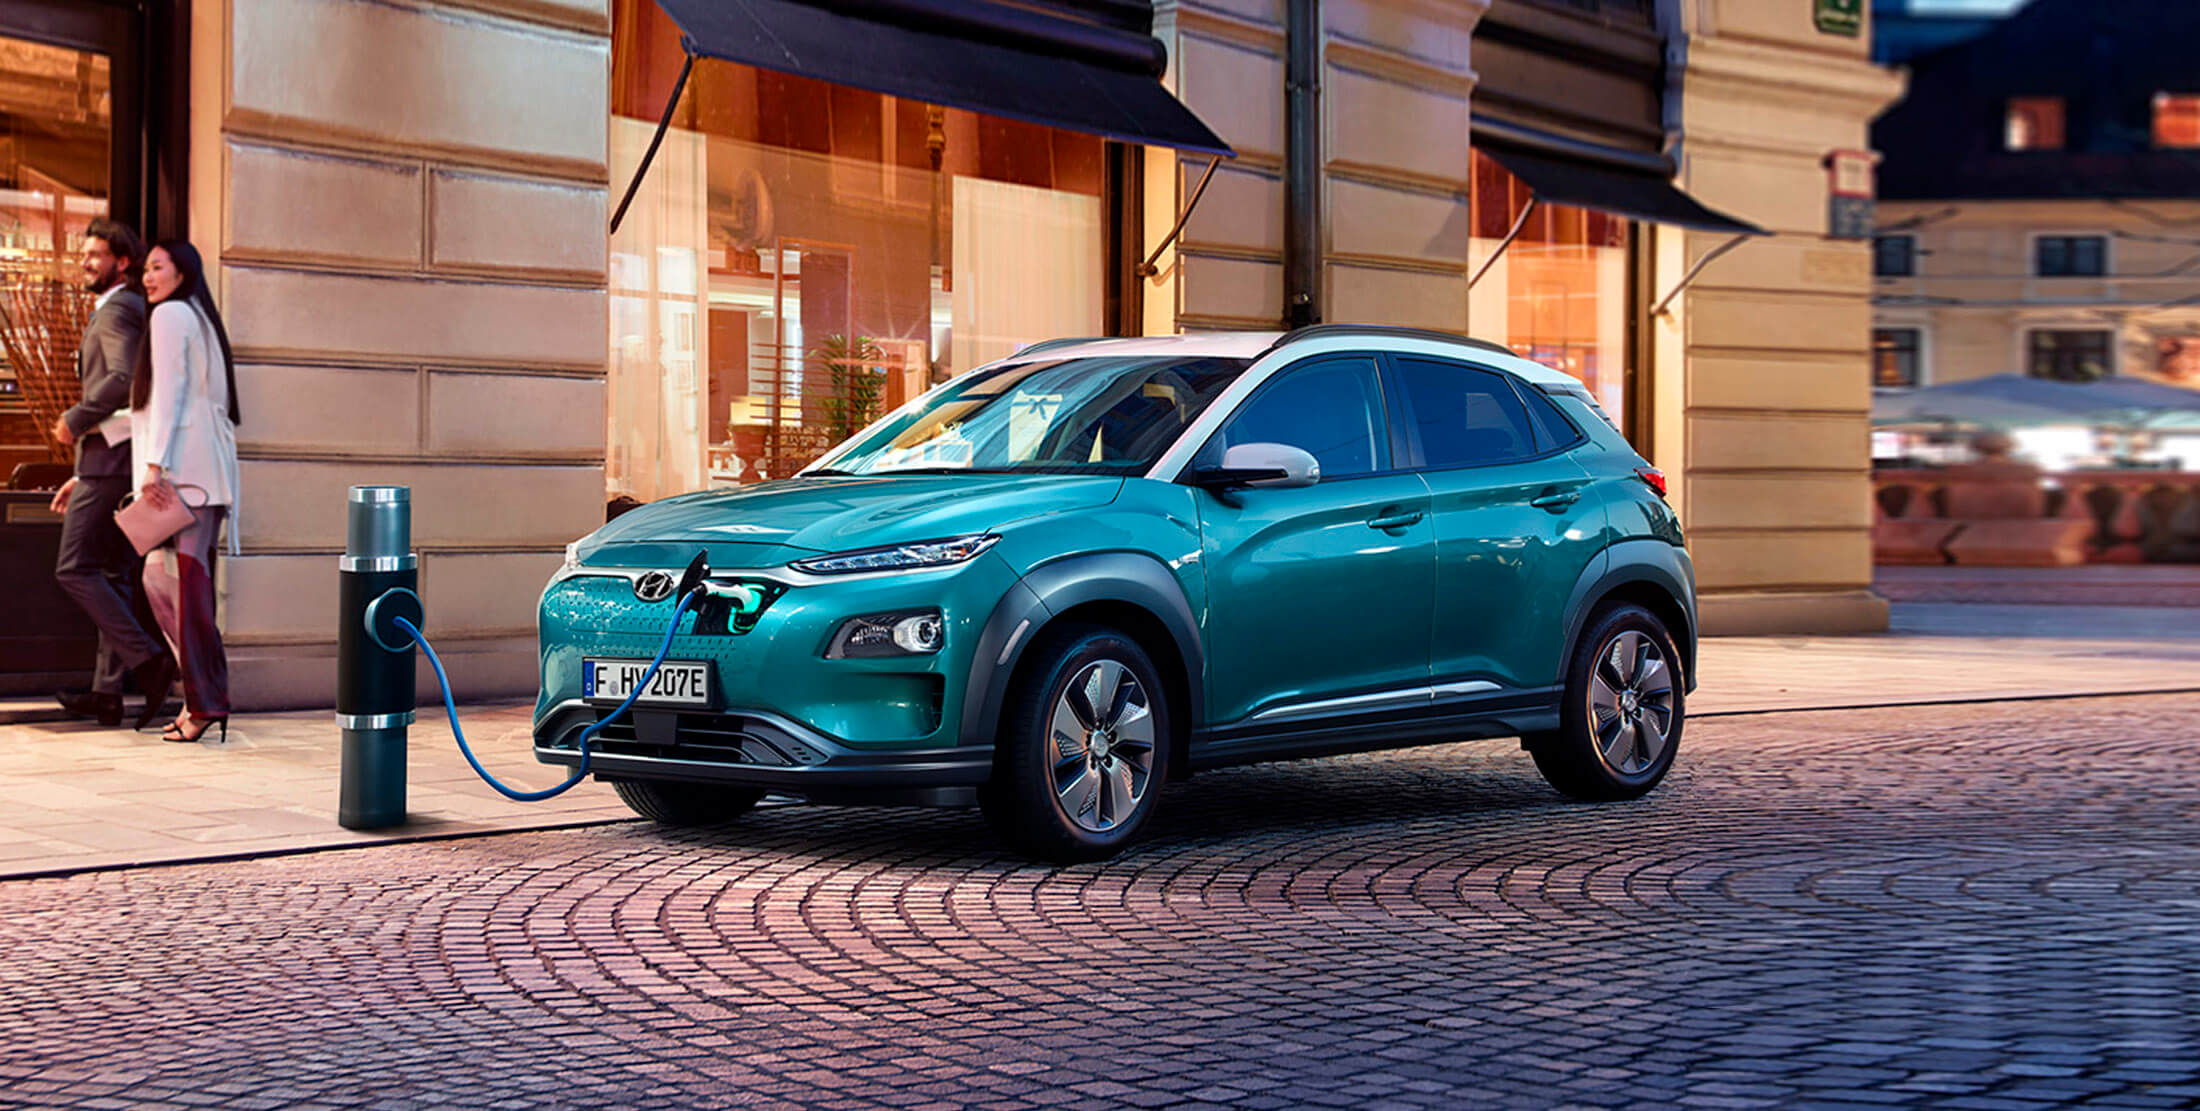 Hyundai Kona Electric Leases from the UK's EV experts | WeVee™